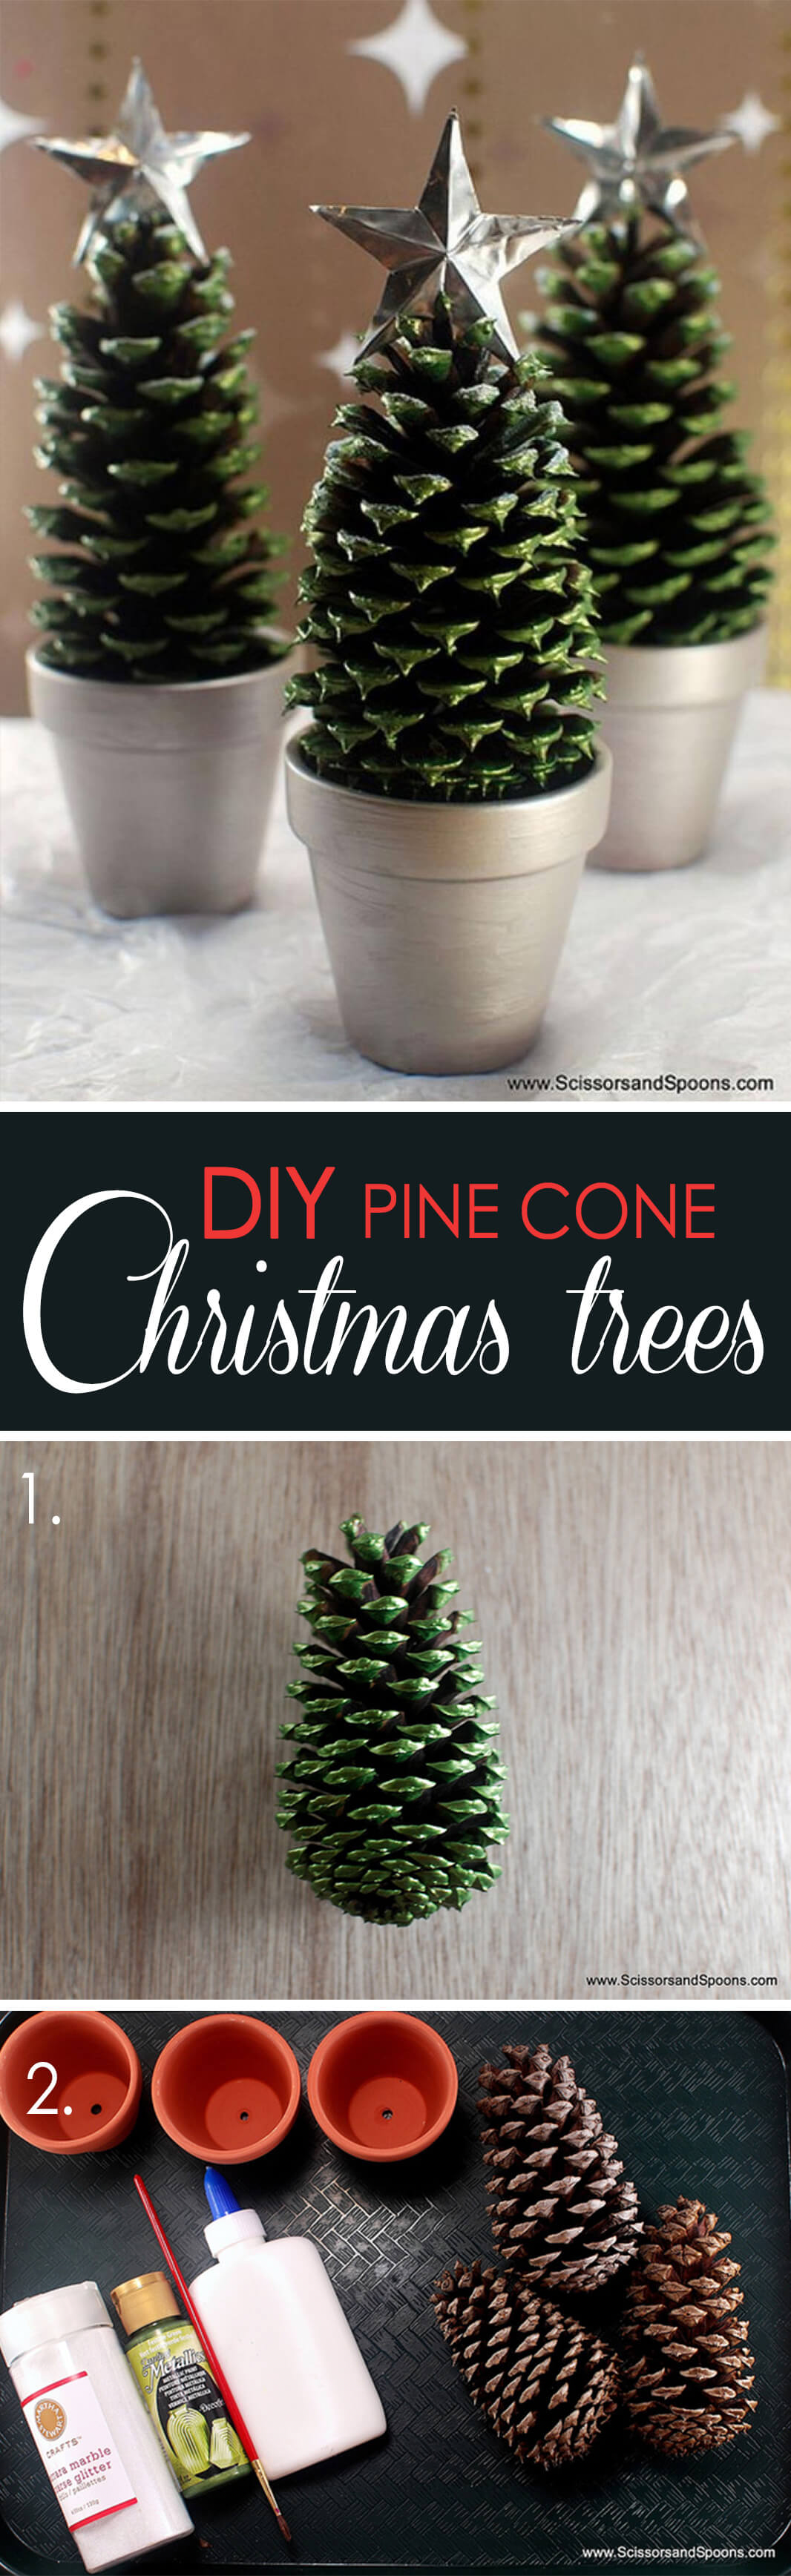 35 Best Diy Pine Cone Crafts Ideas And Designs For 2021